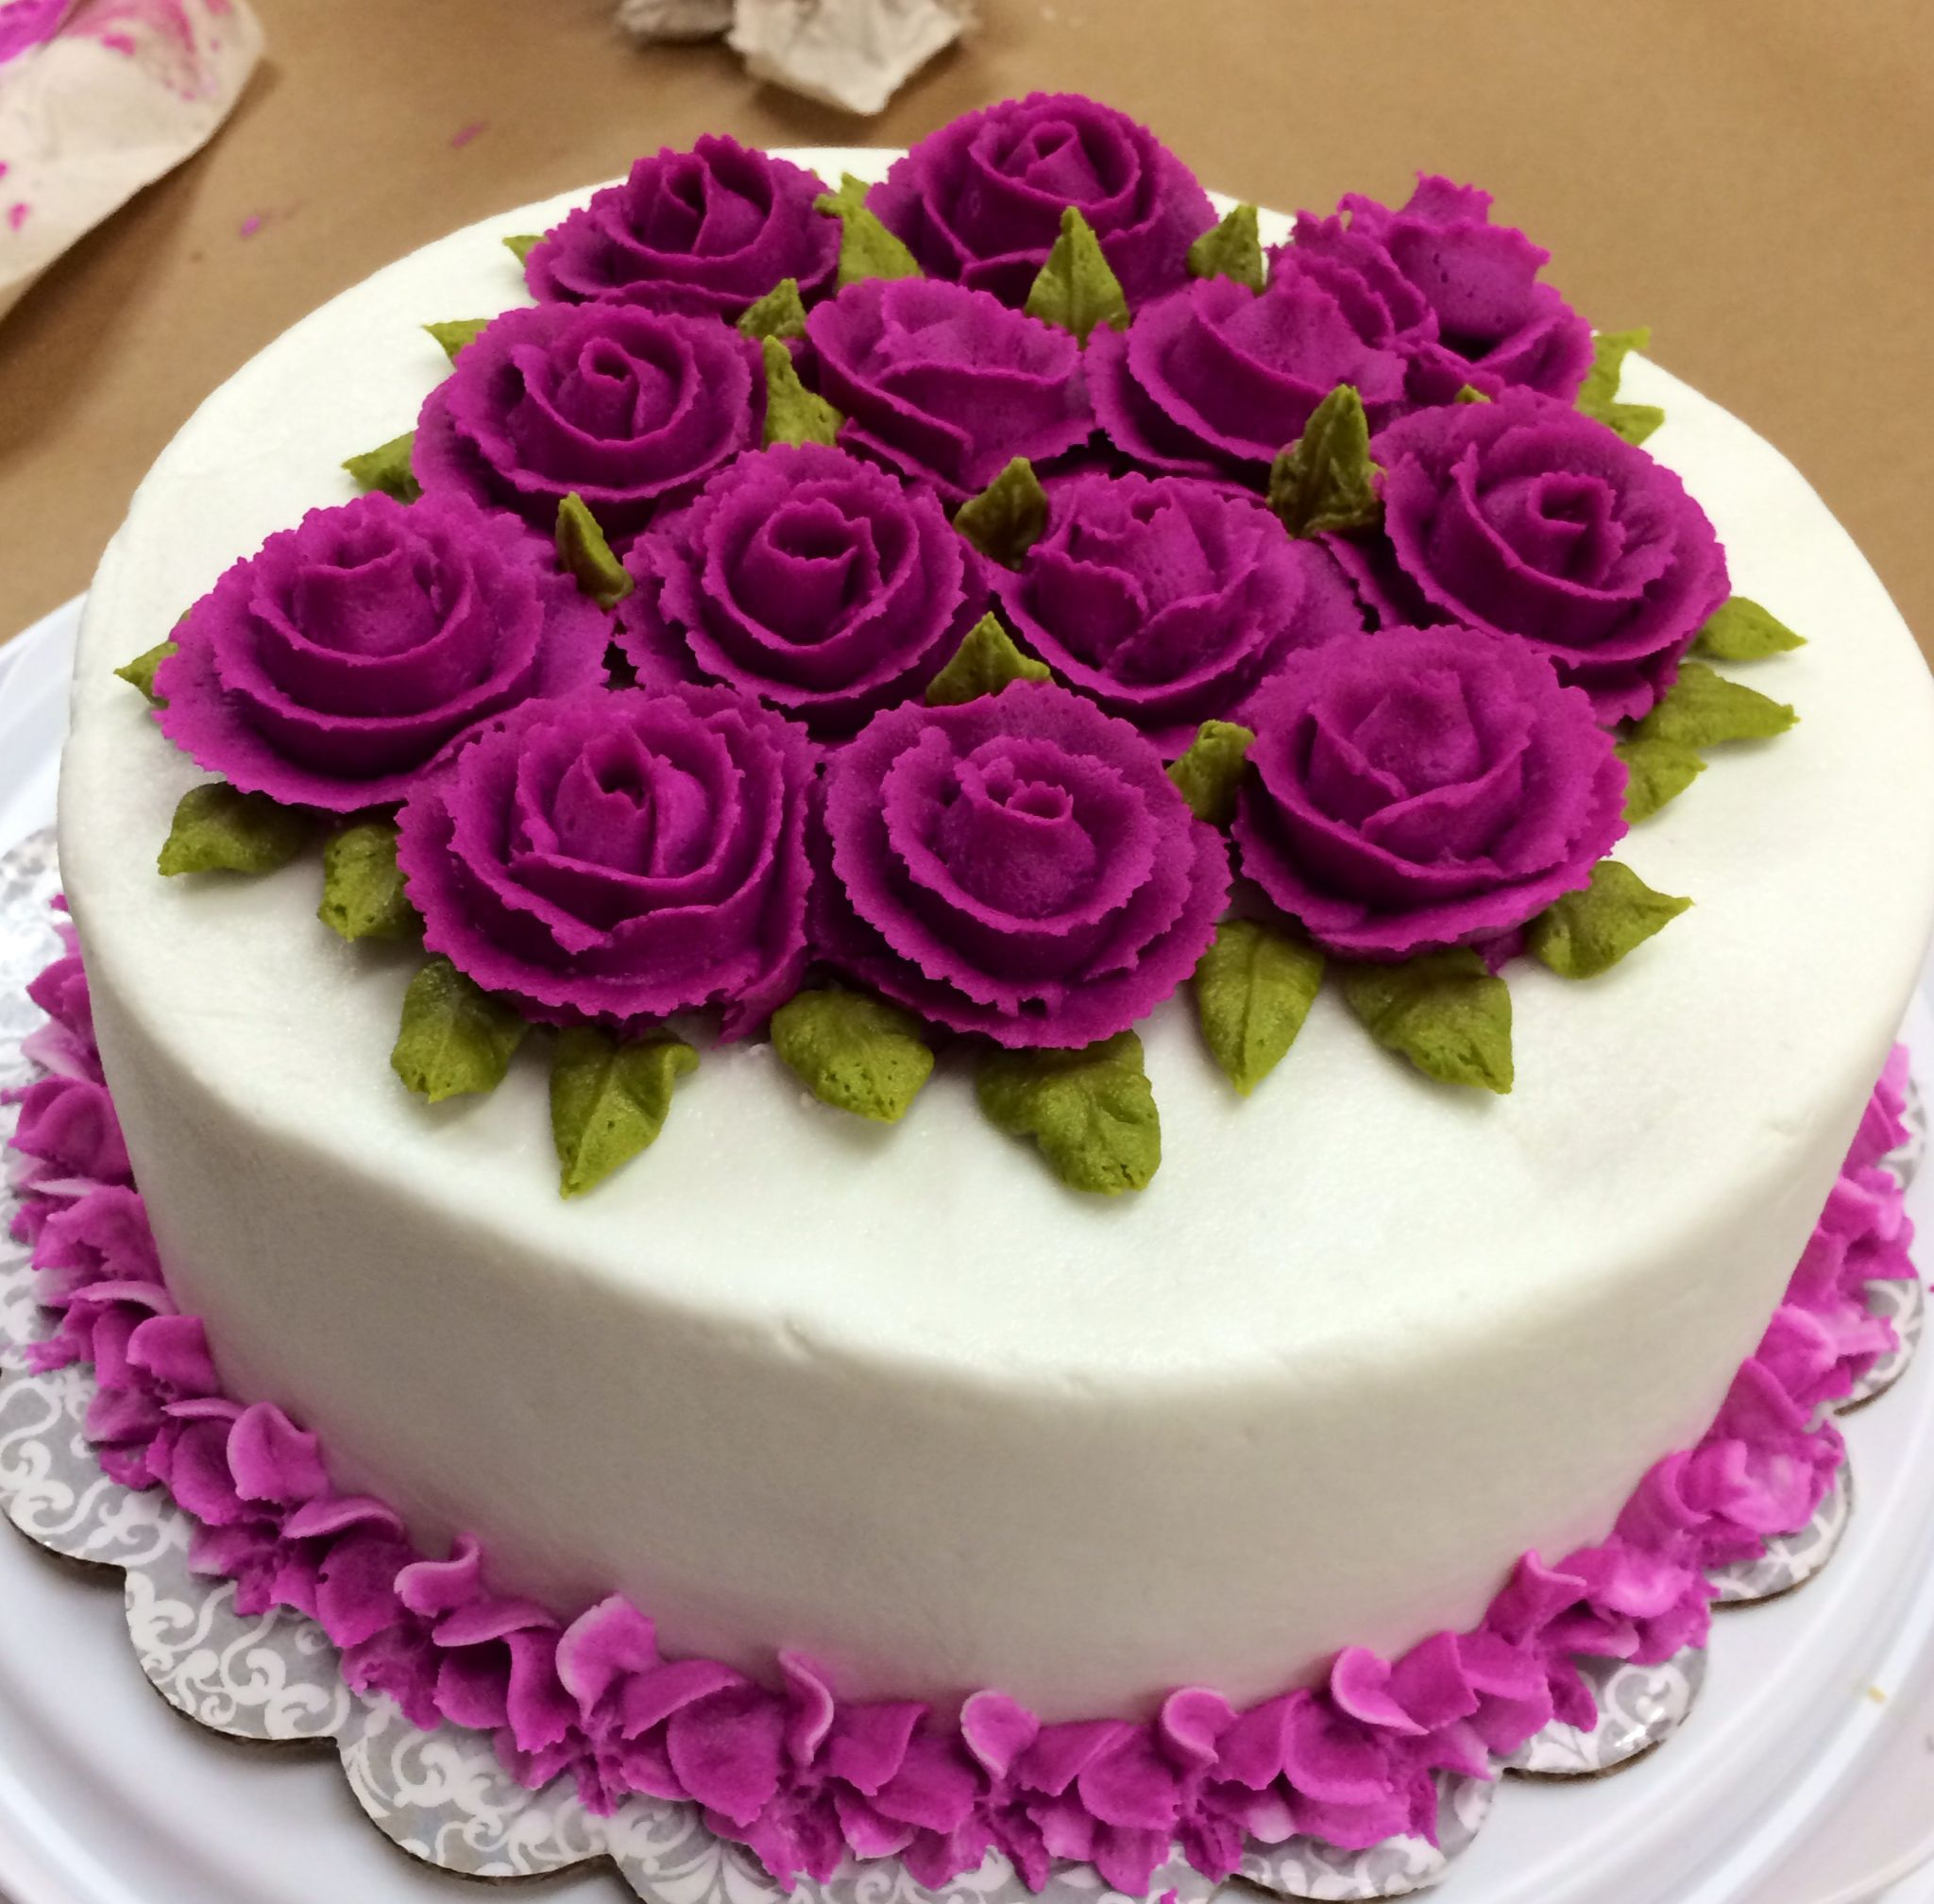 Come learn how to decorate Cakes with Buttercream side ...